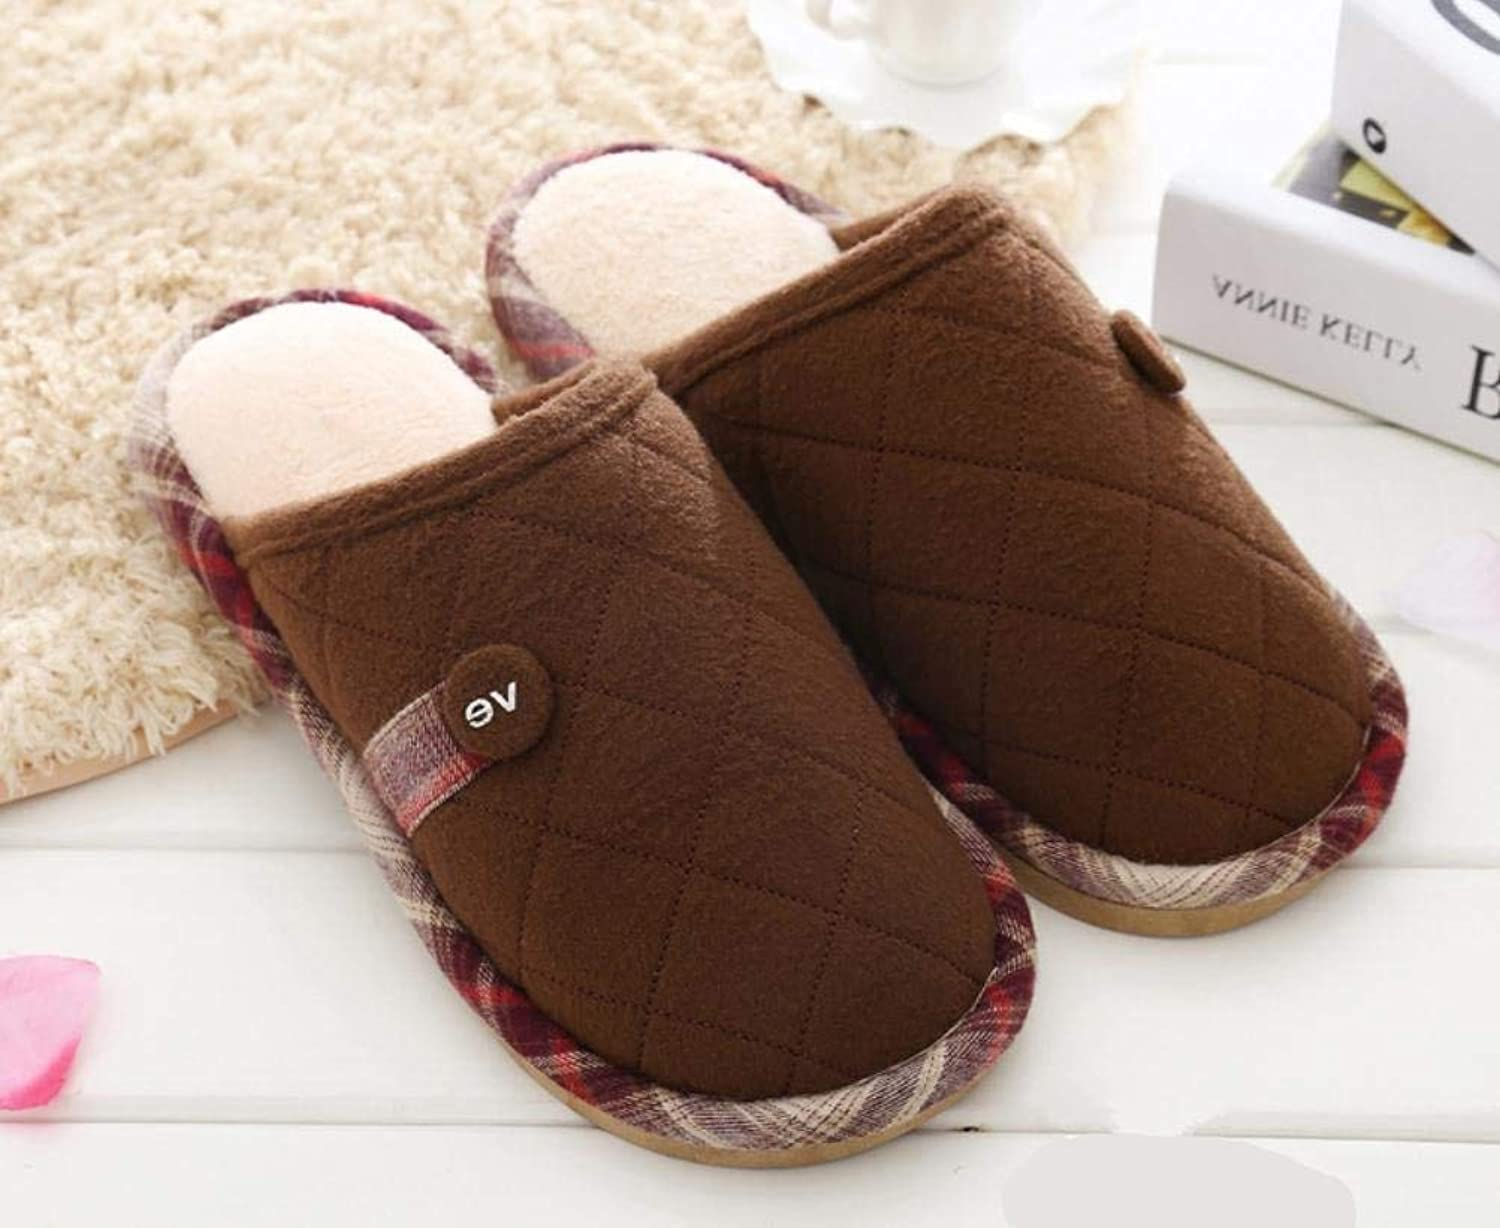 Men 's Home Cotton Slippers Indoor Keep Warm Casual Slippers Soild color Personality Quality for Men Large Brown